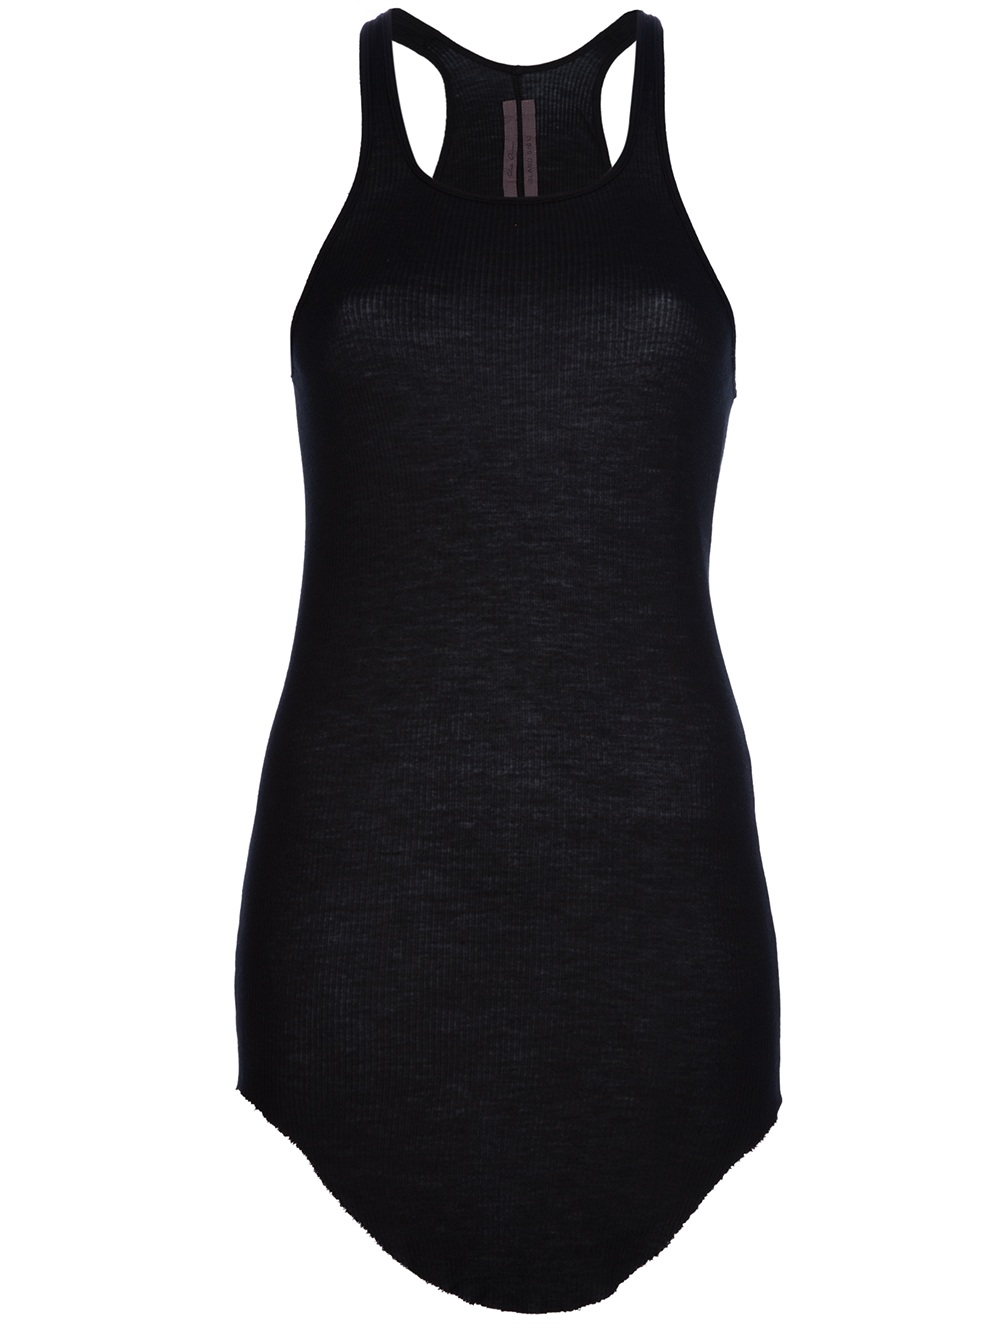 46657f9ad9bcd9 Lyst - Rick Owens Long Tank Top in Black